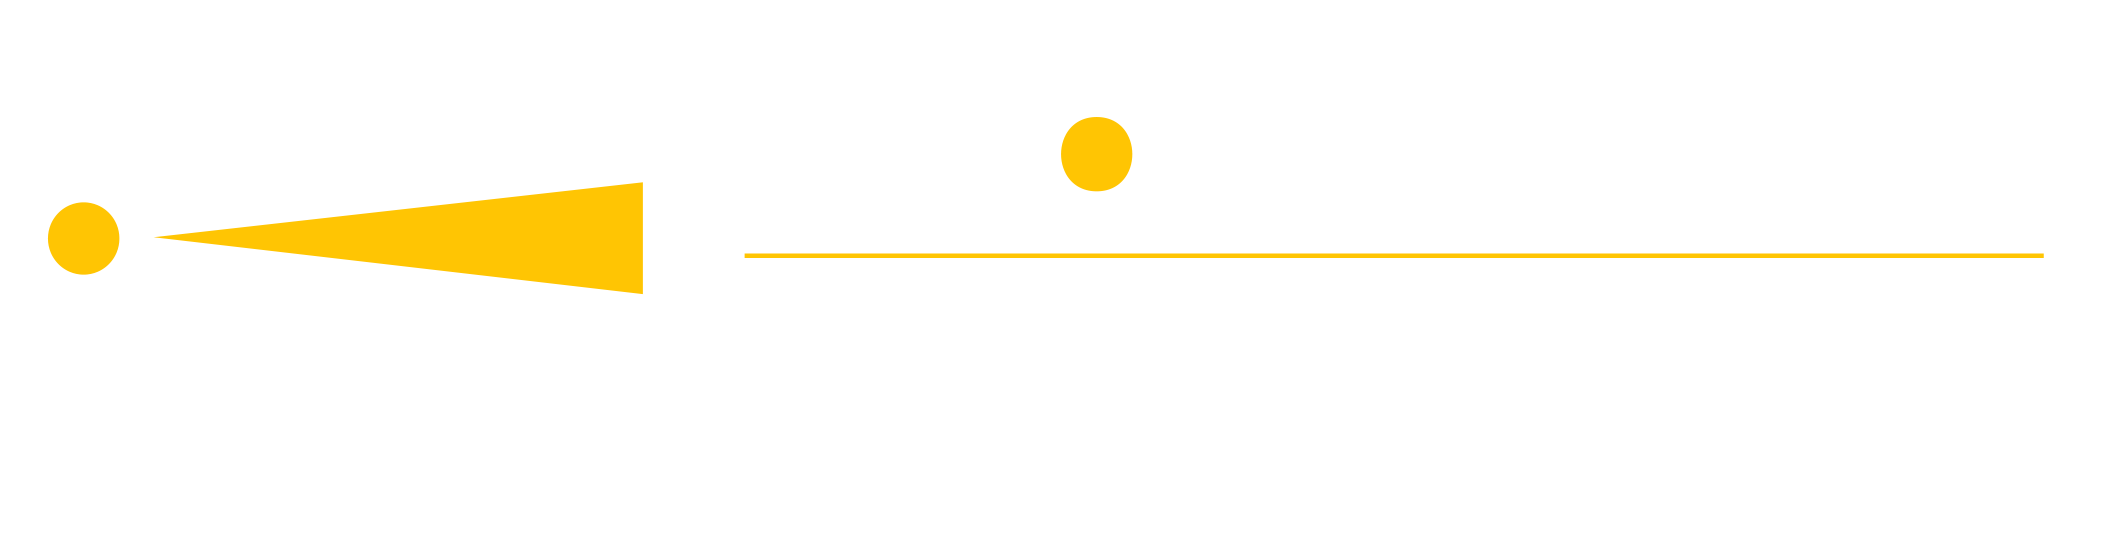 Innocent Lives Foundation